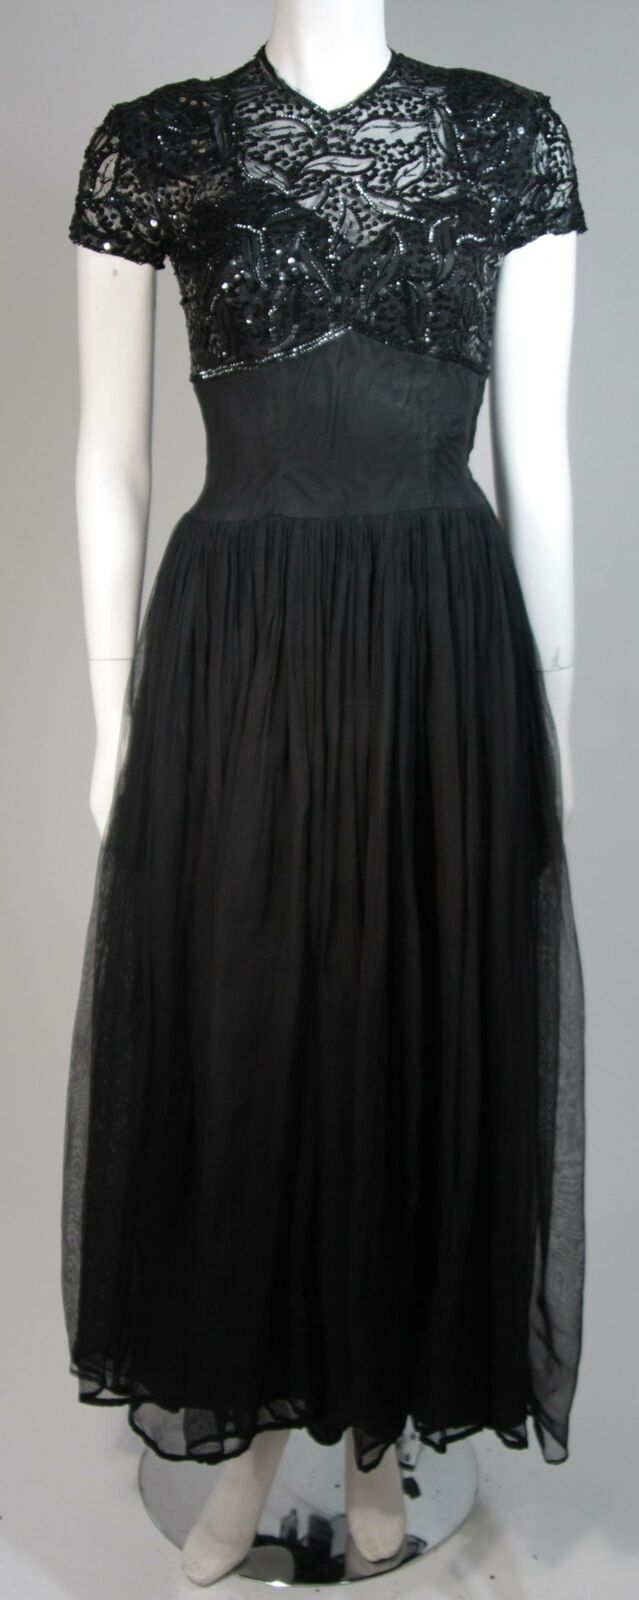 CEIL CHAPMAN Attributed Black Gown Size Small - image 2